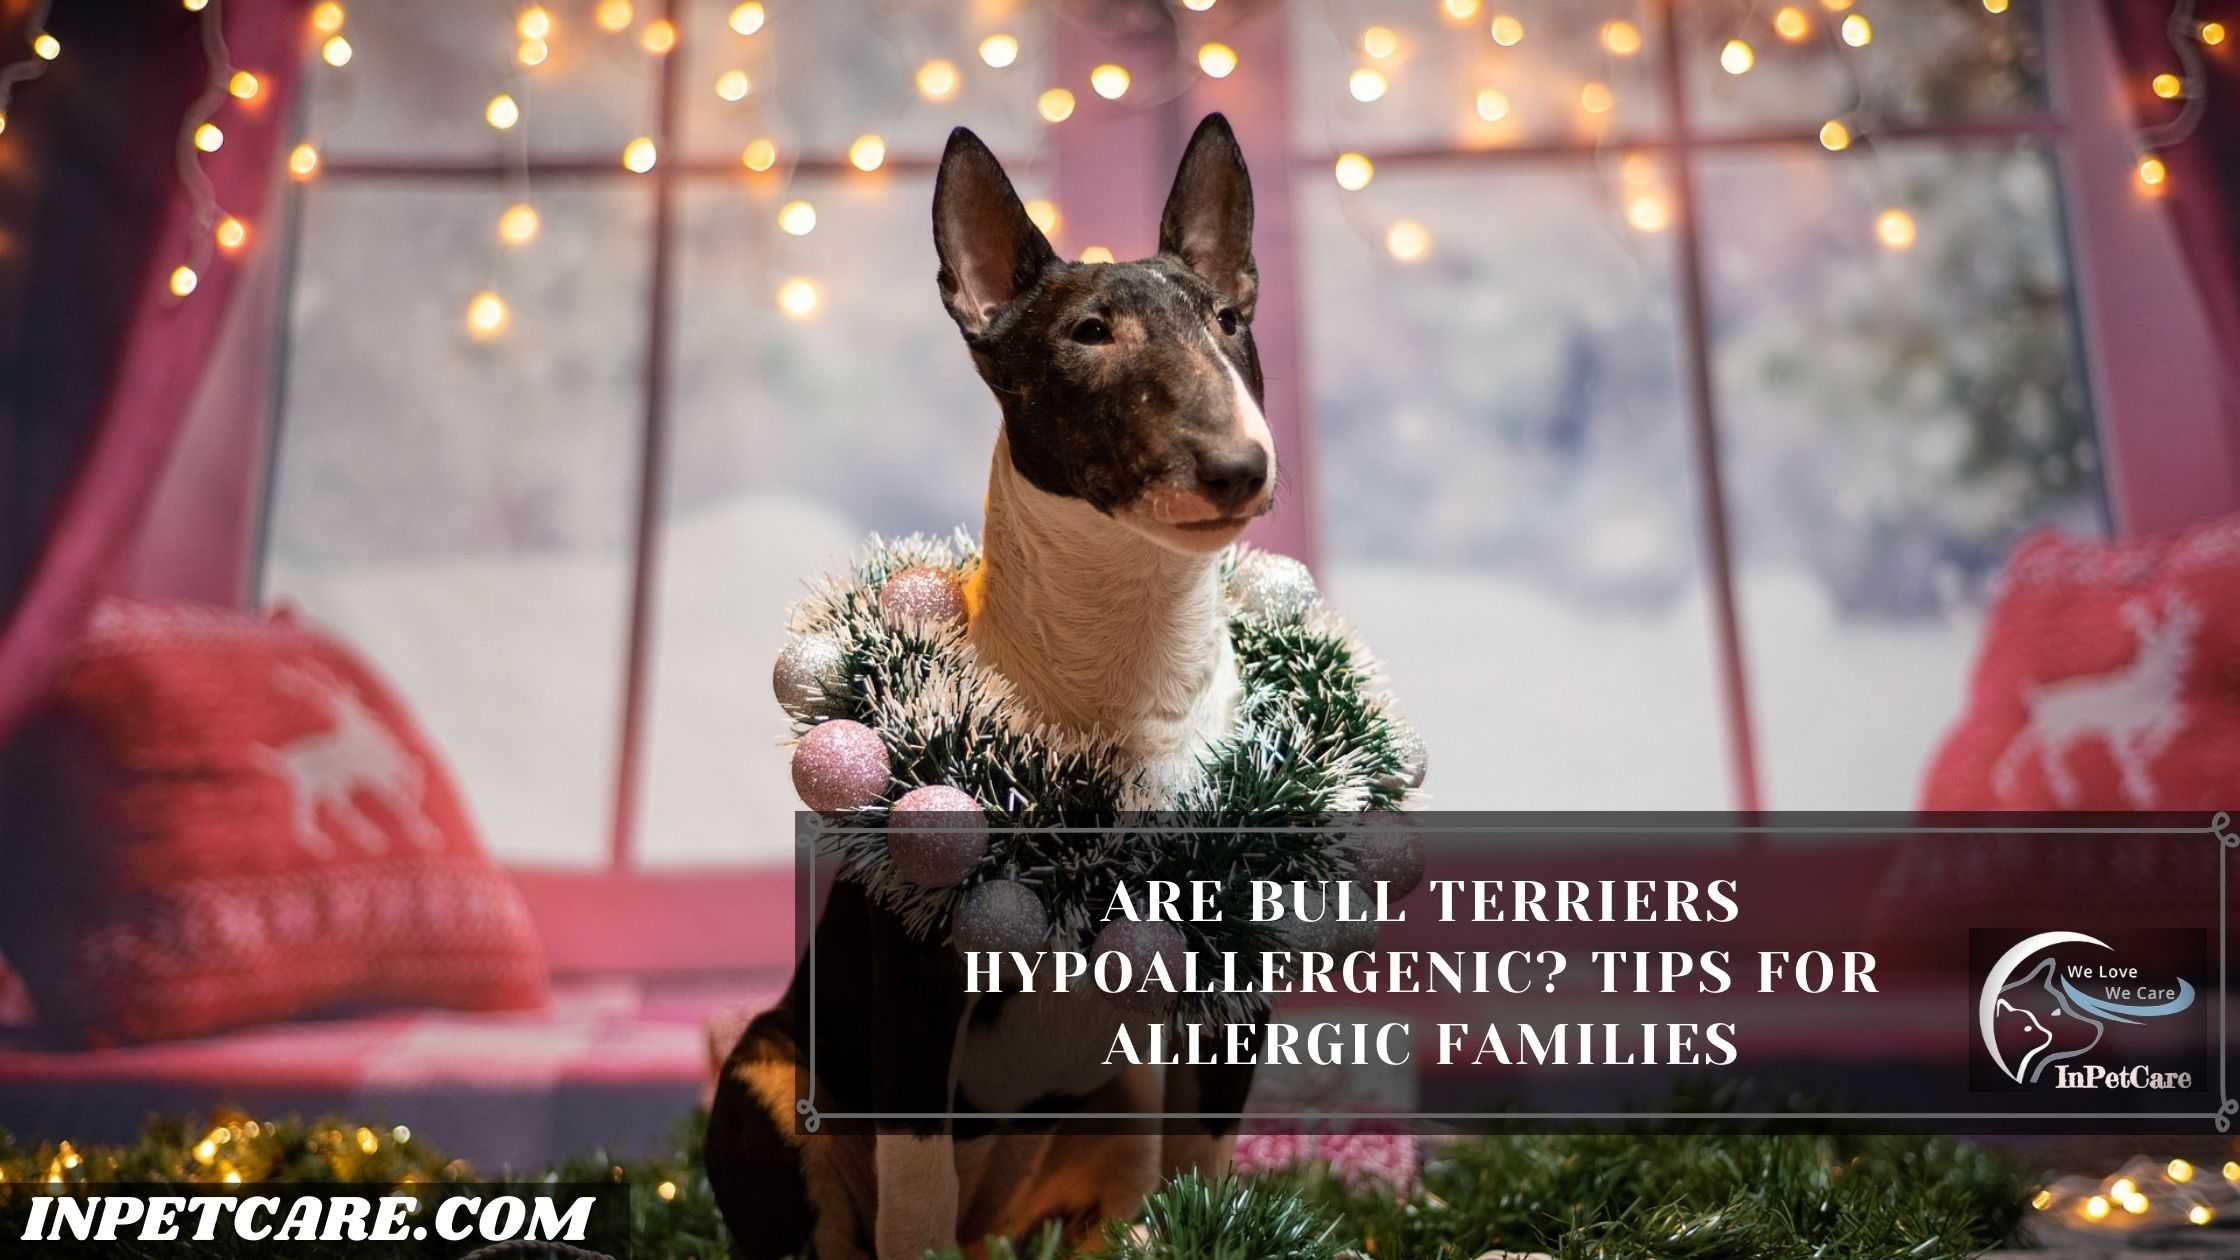 Are Bull Terriers Hypoallergenic? Tips For Allergic Families